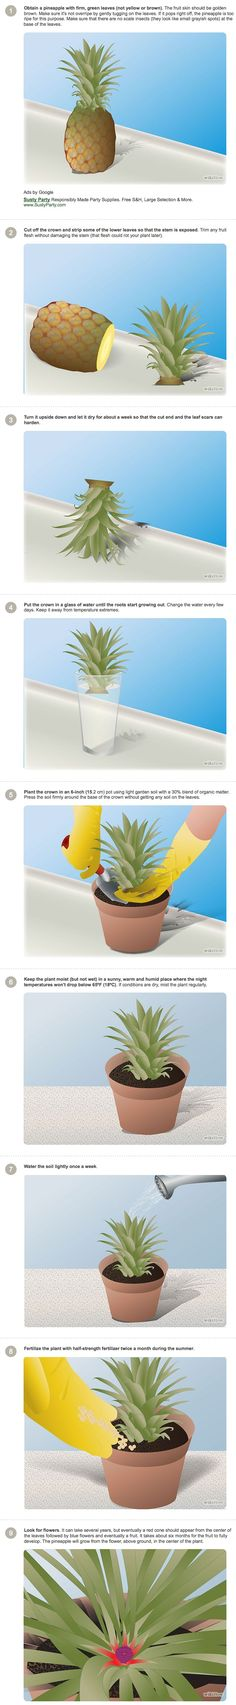 How to grow a pineapple tree!